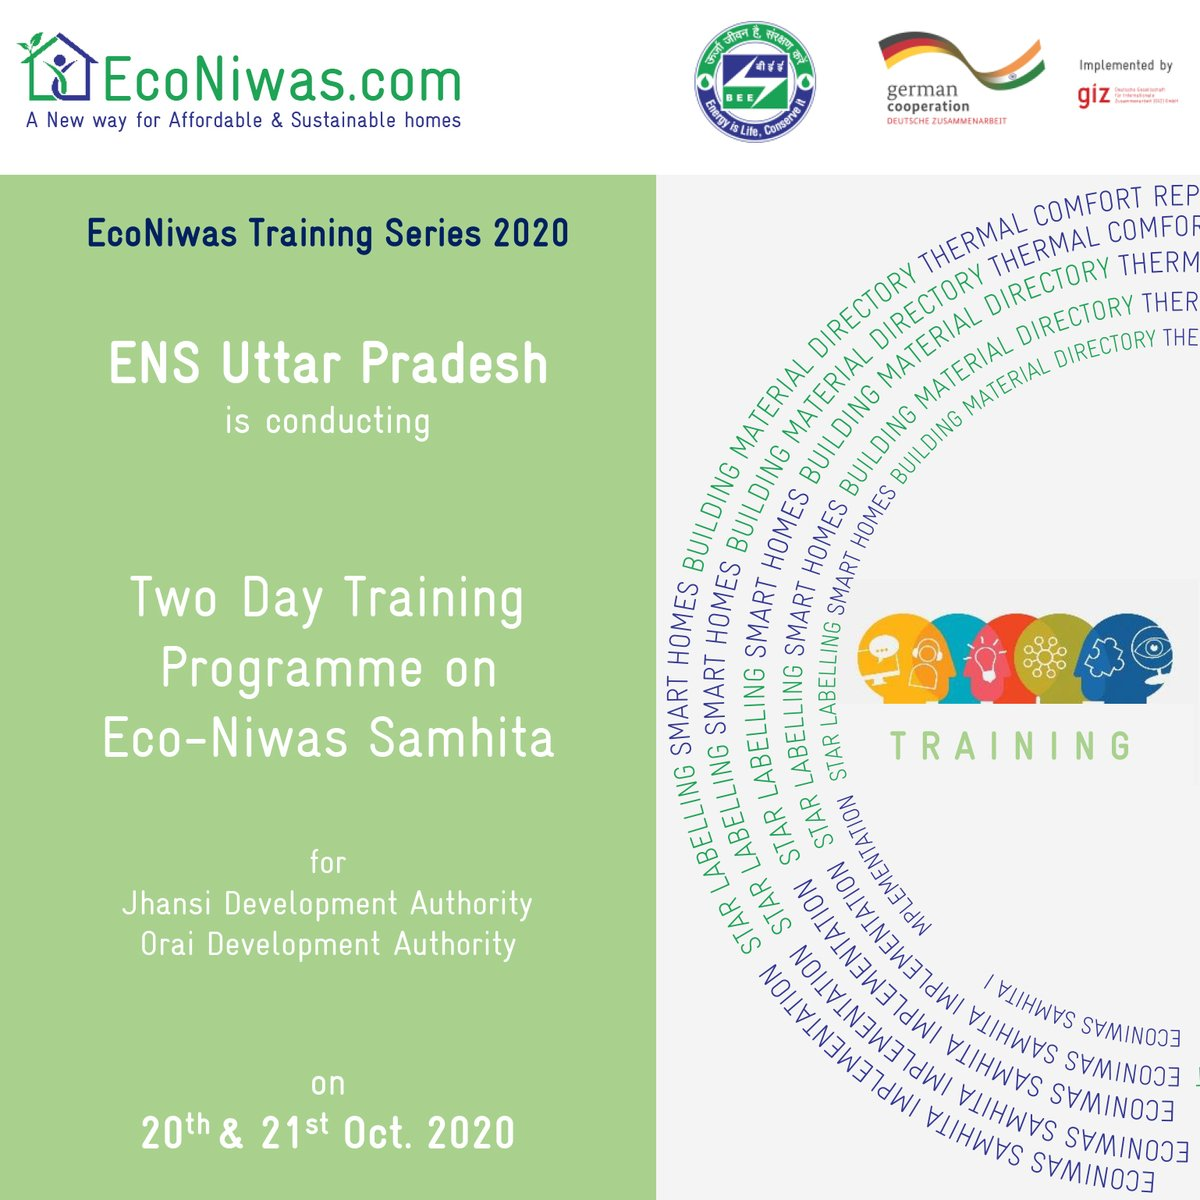 Two day Training session on #EcoNiwasSamhita organized by #ENSCellUP on 20th & 21st October, 2020 starting at 11:00 a.m. @beeindiadigital @giz_india @UPNEDA_Agency https://t.co/YrycvamvGe